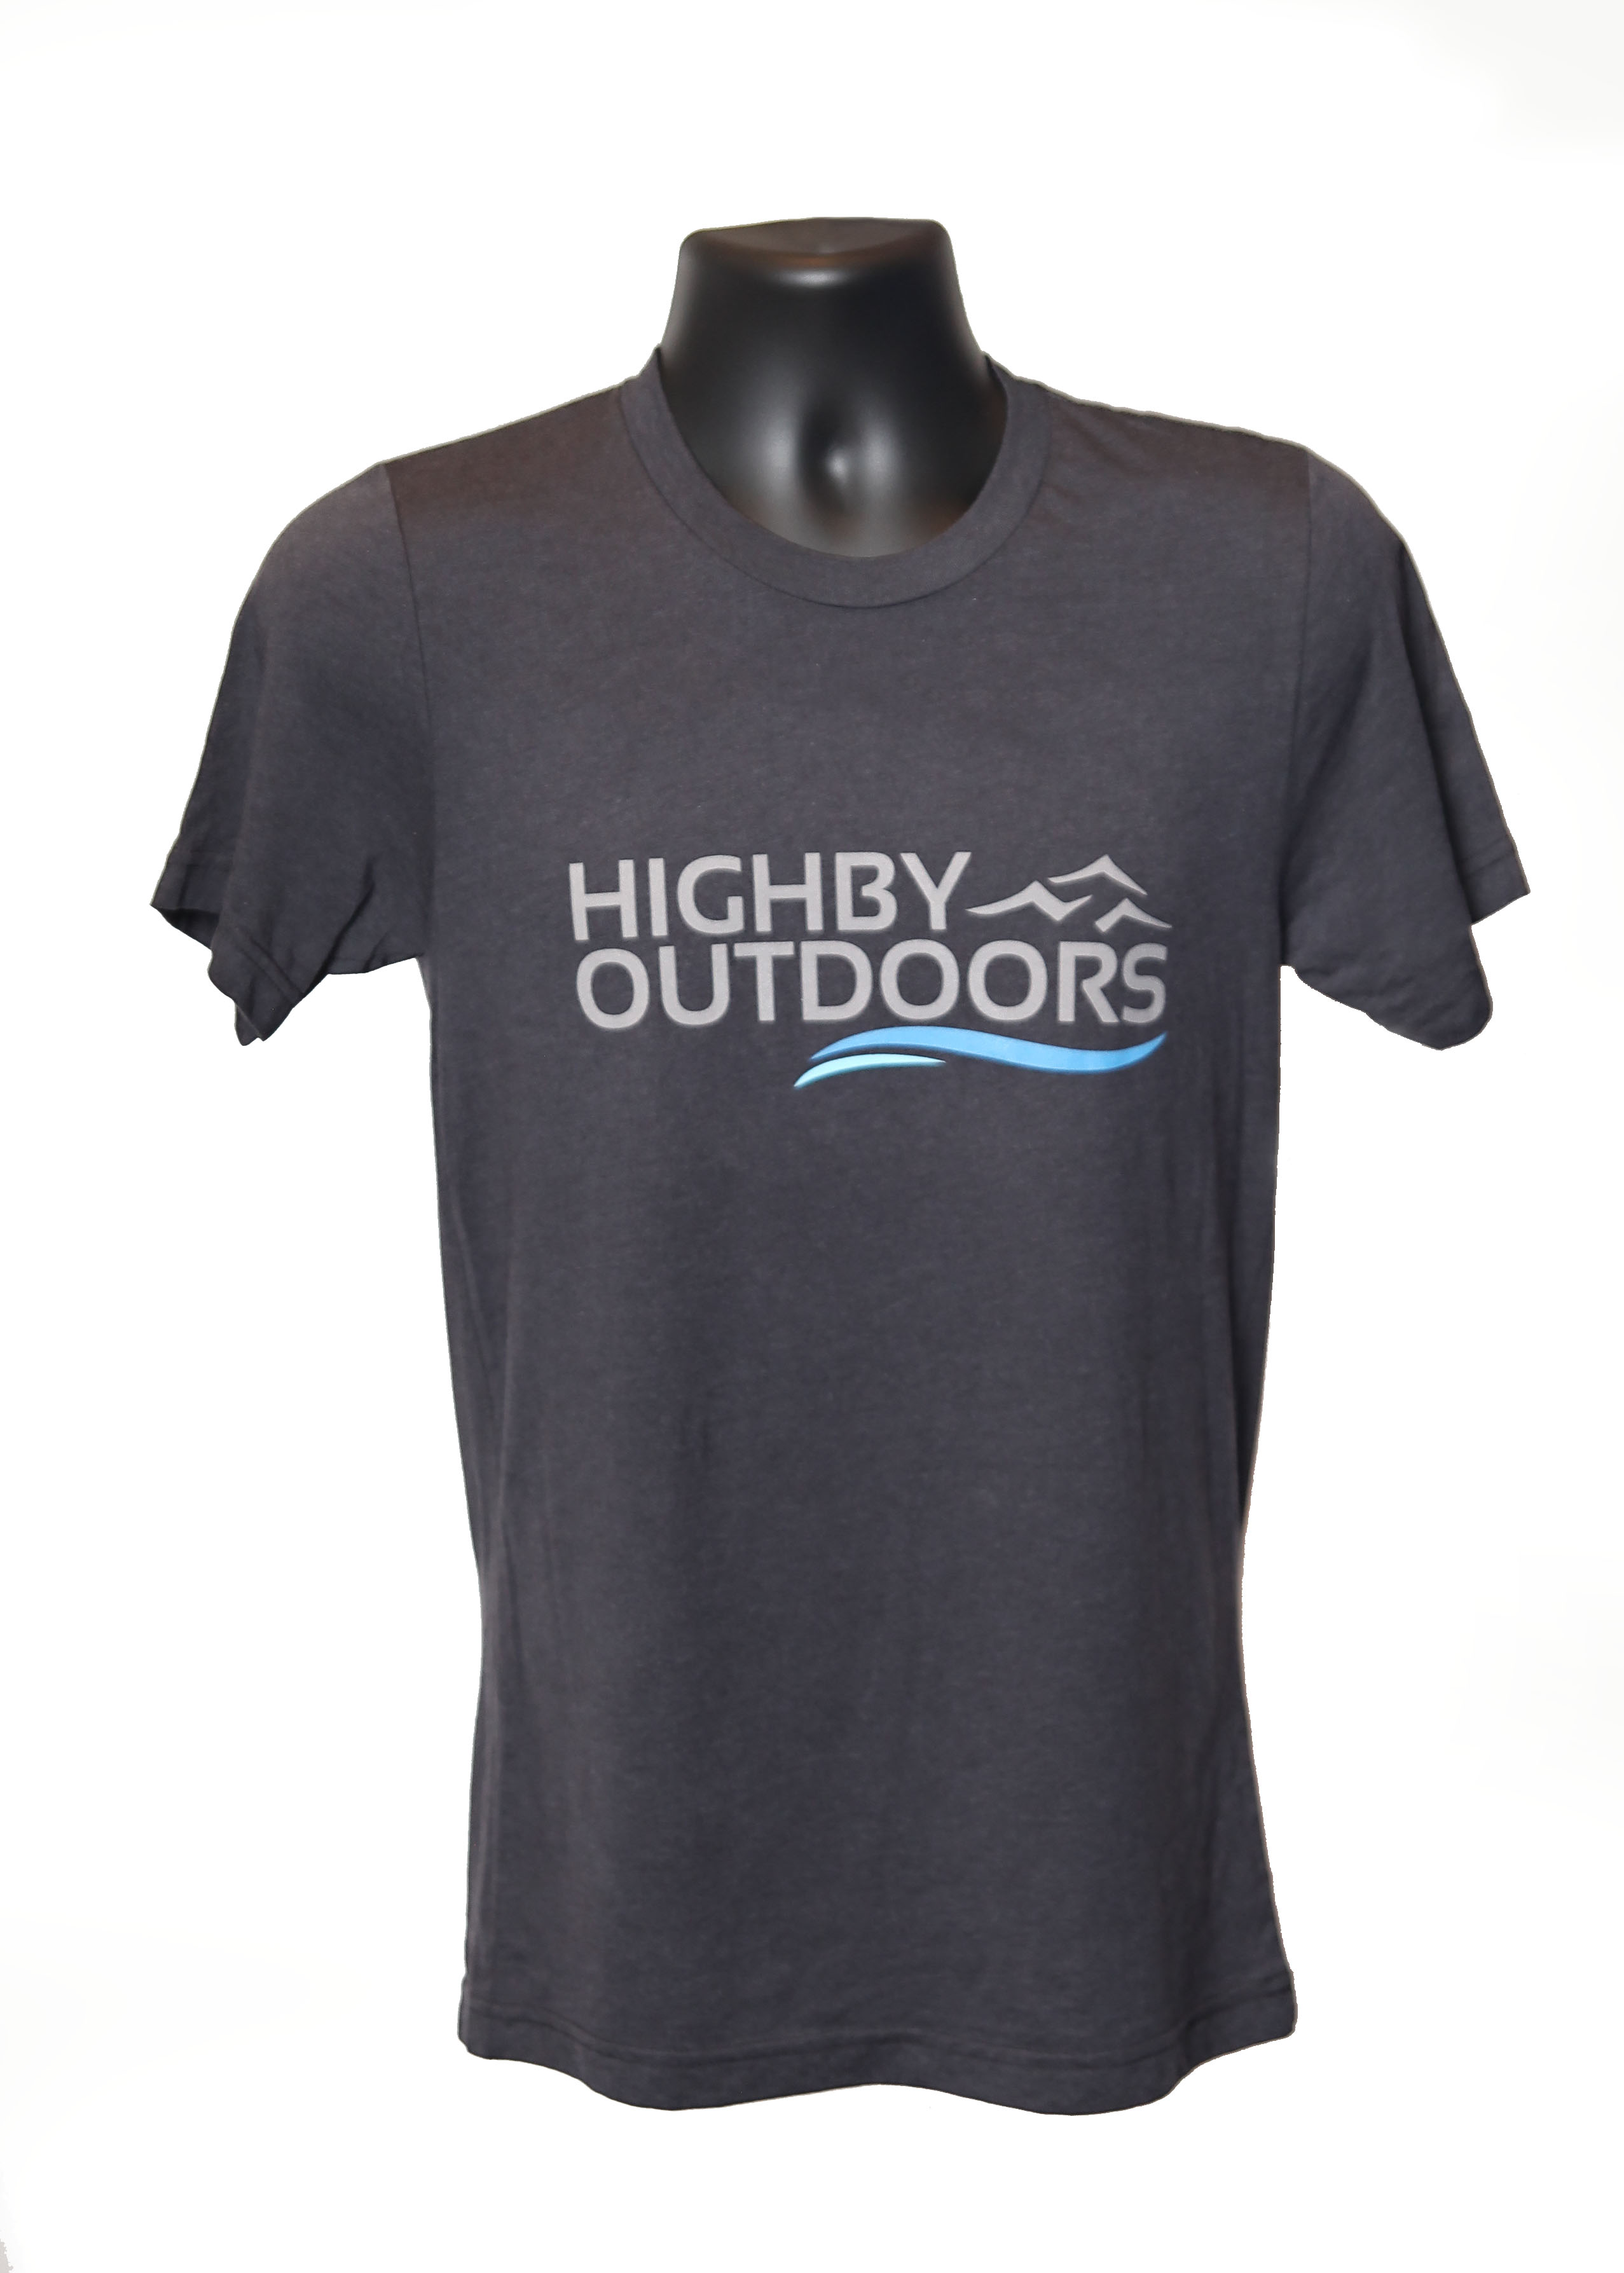 Highby Outdoors Logo T-Shirt - Small